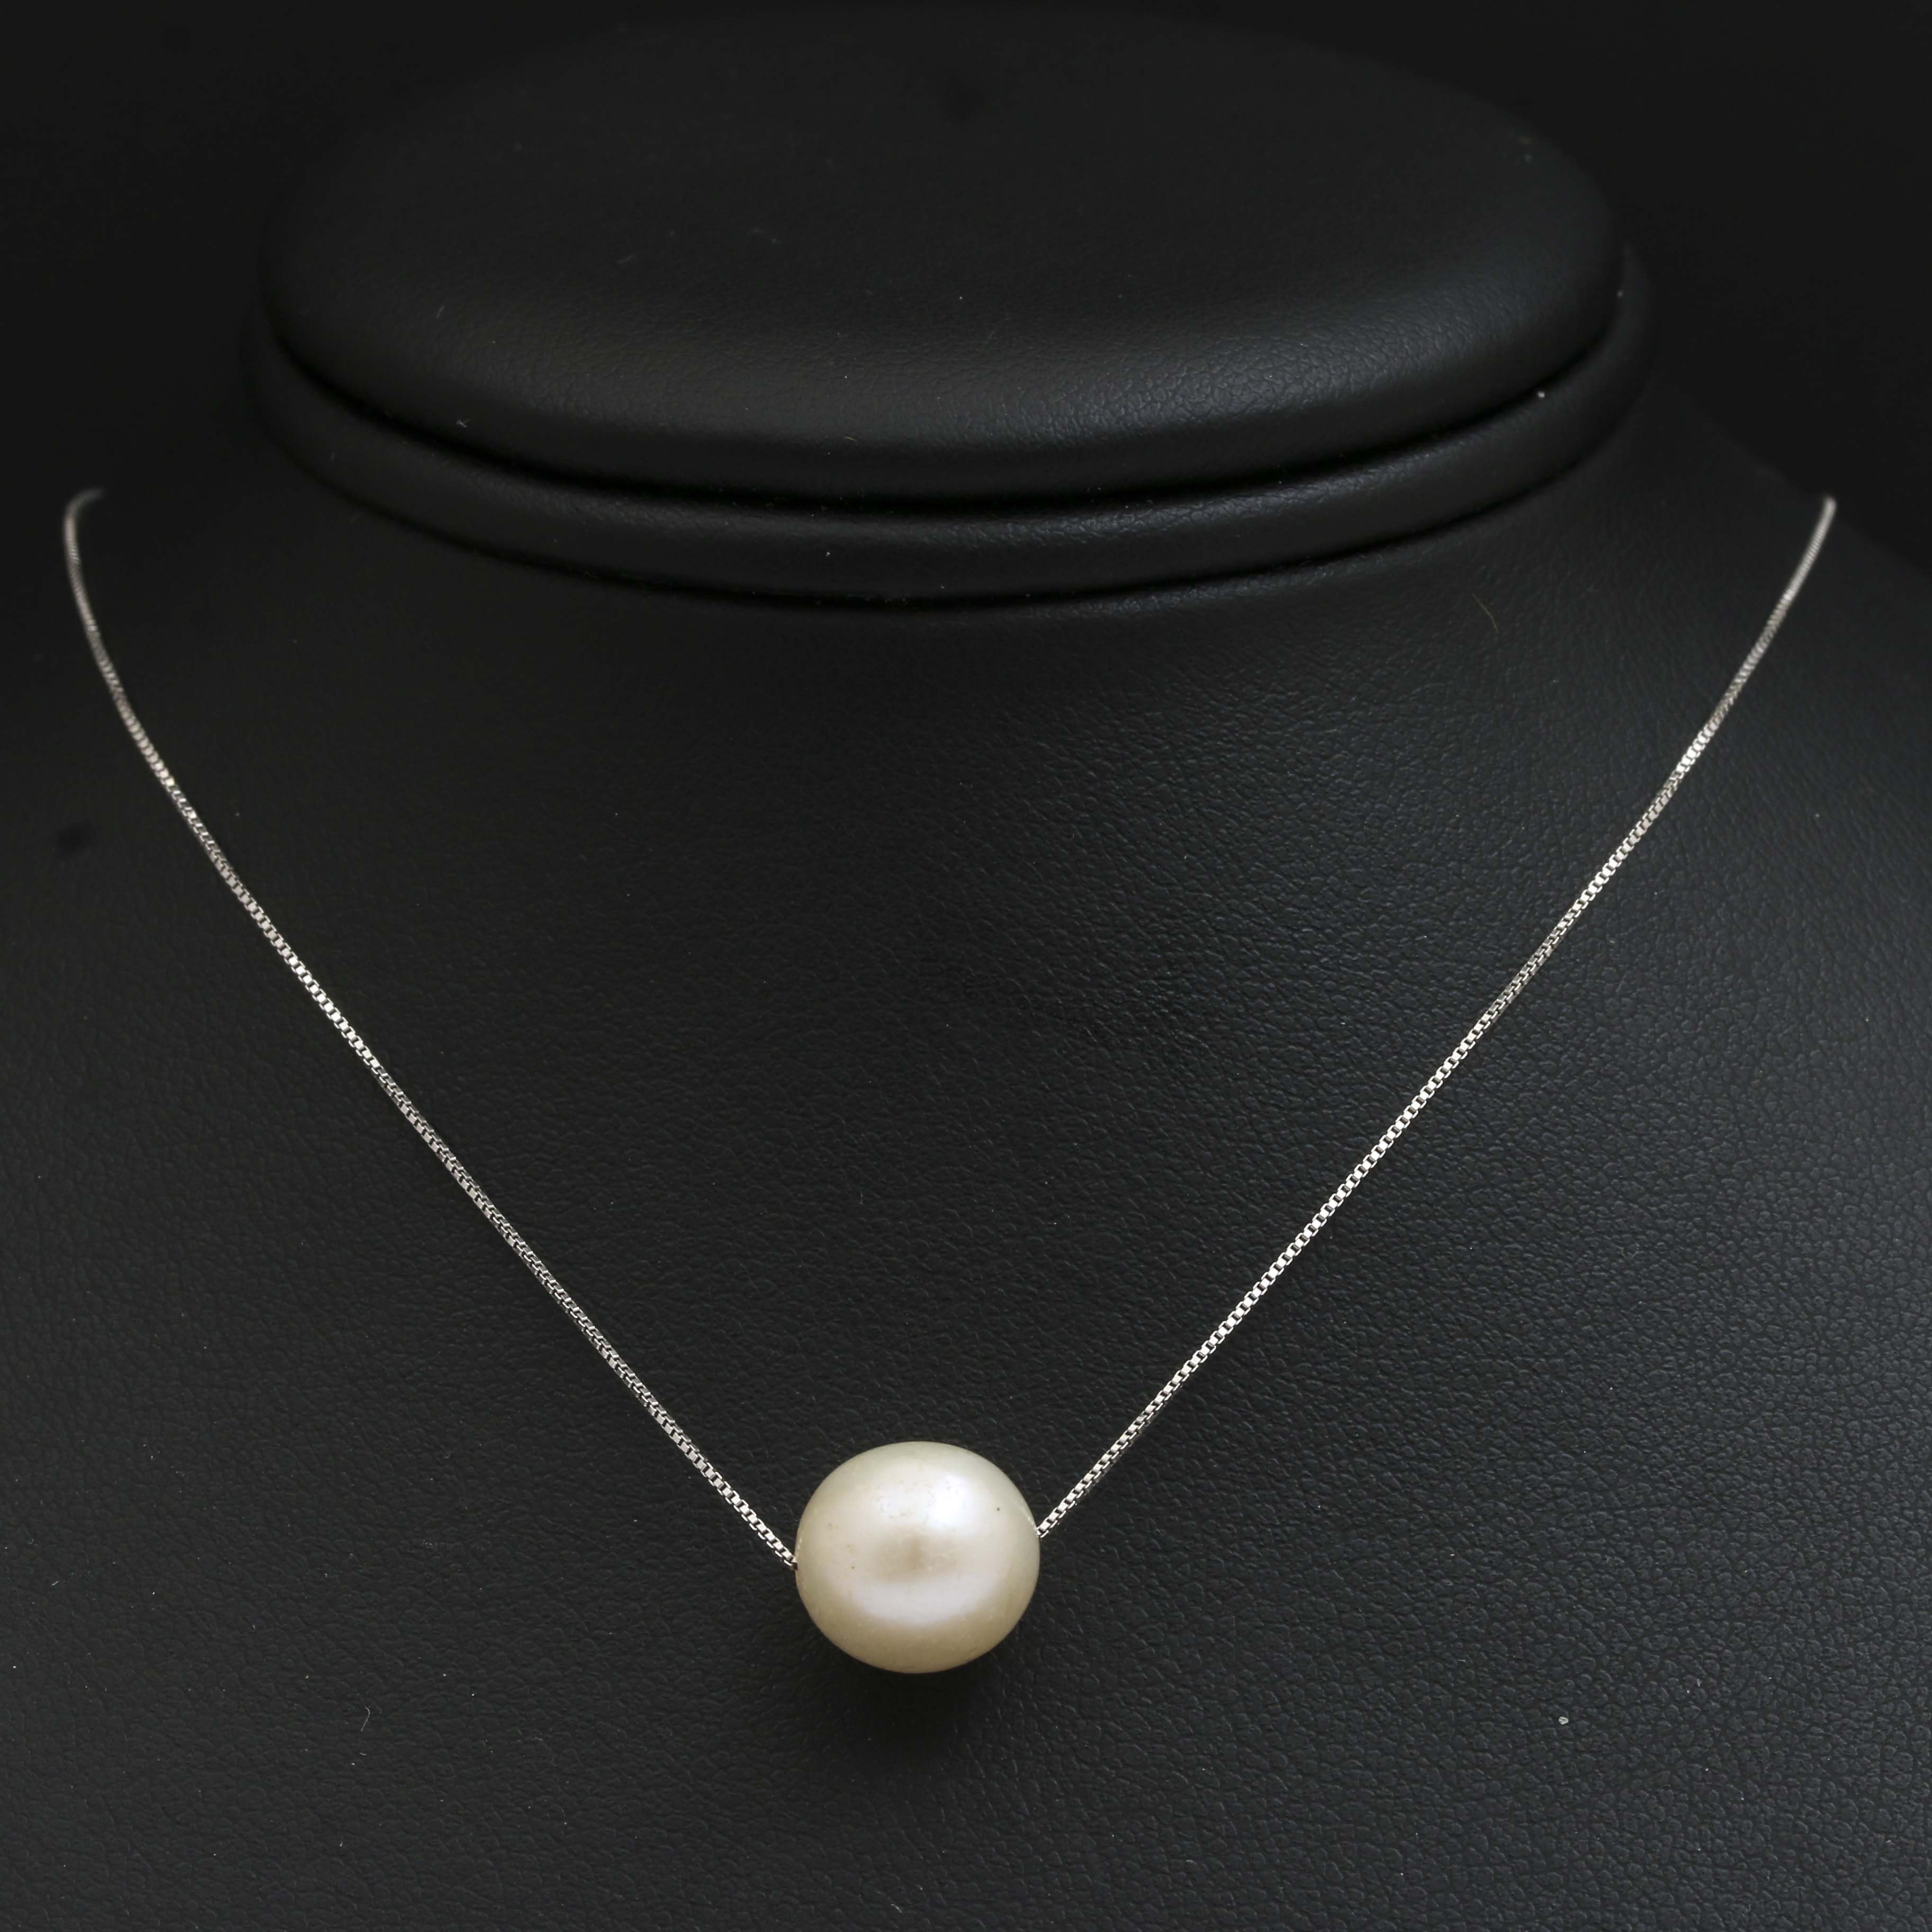 18K White Gold Cultured Pearl Necklace